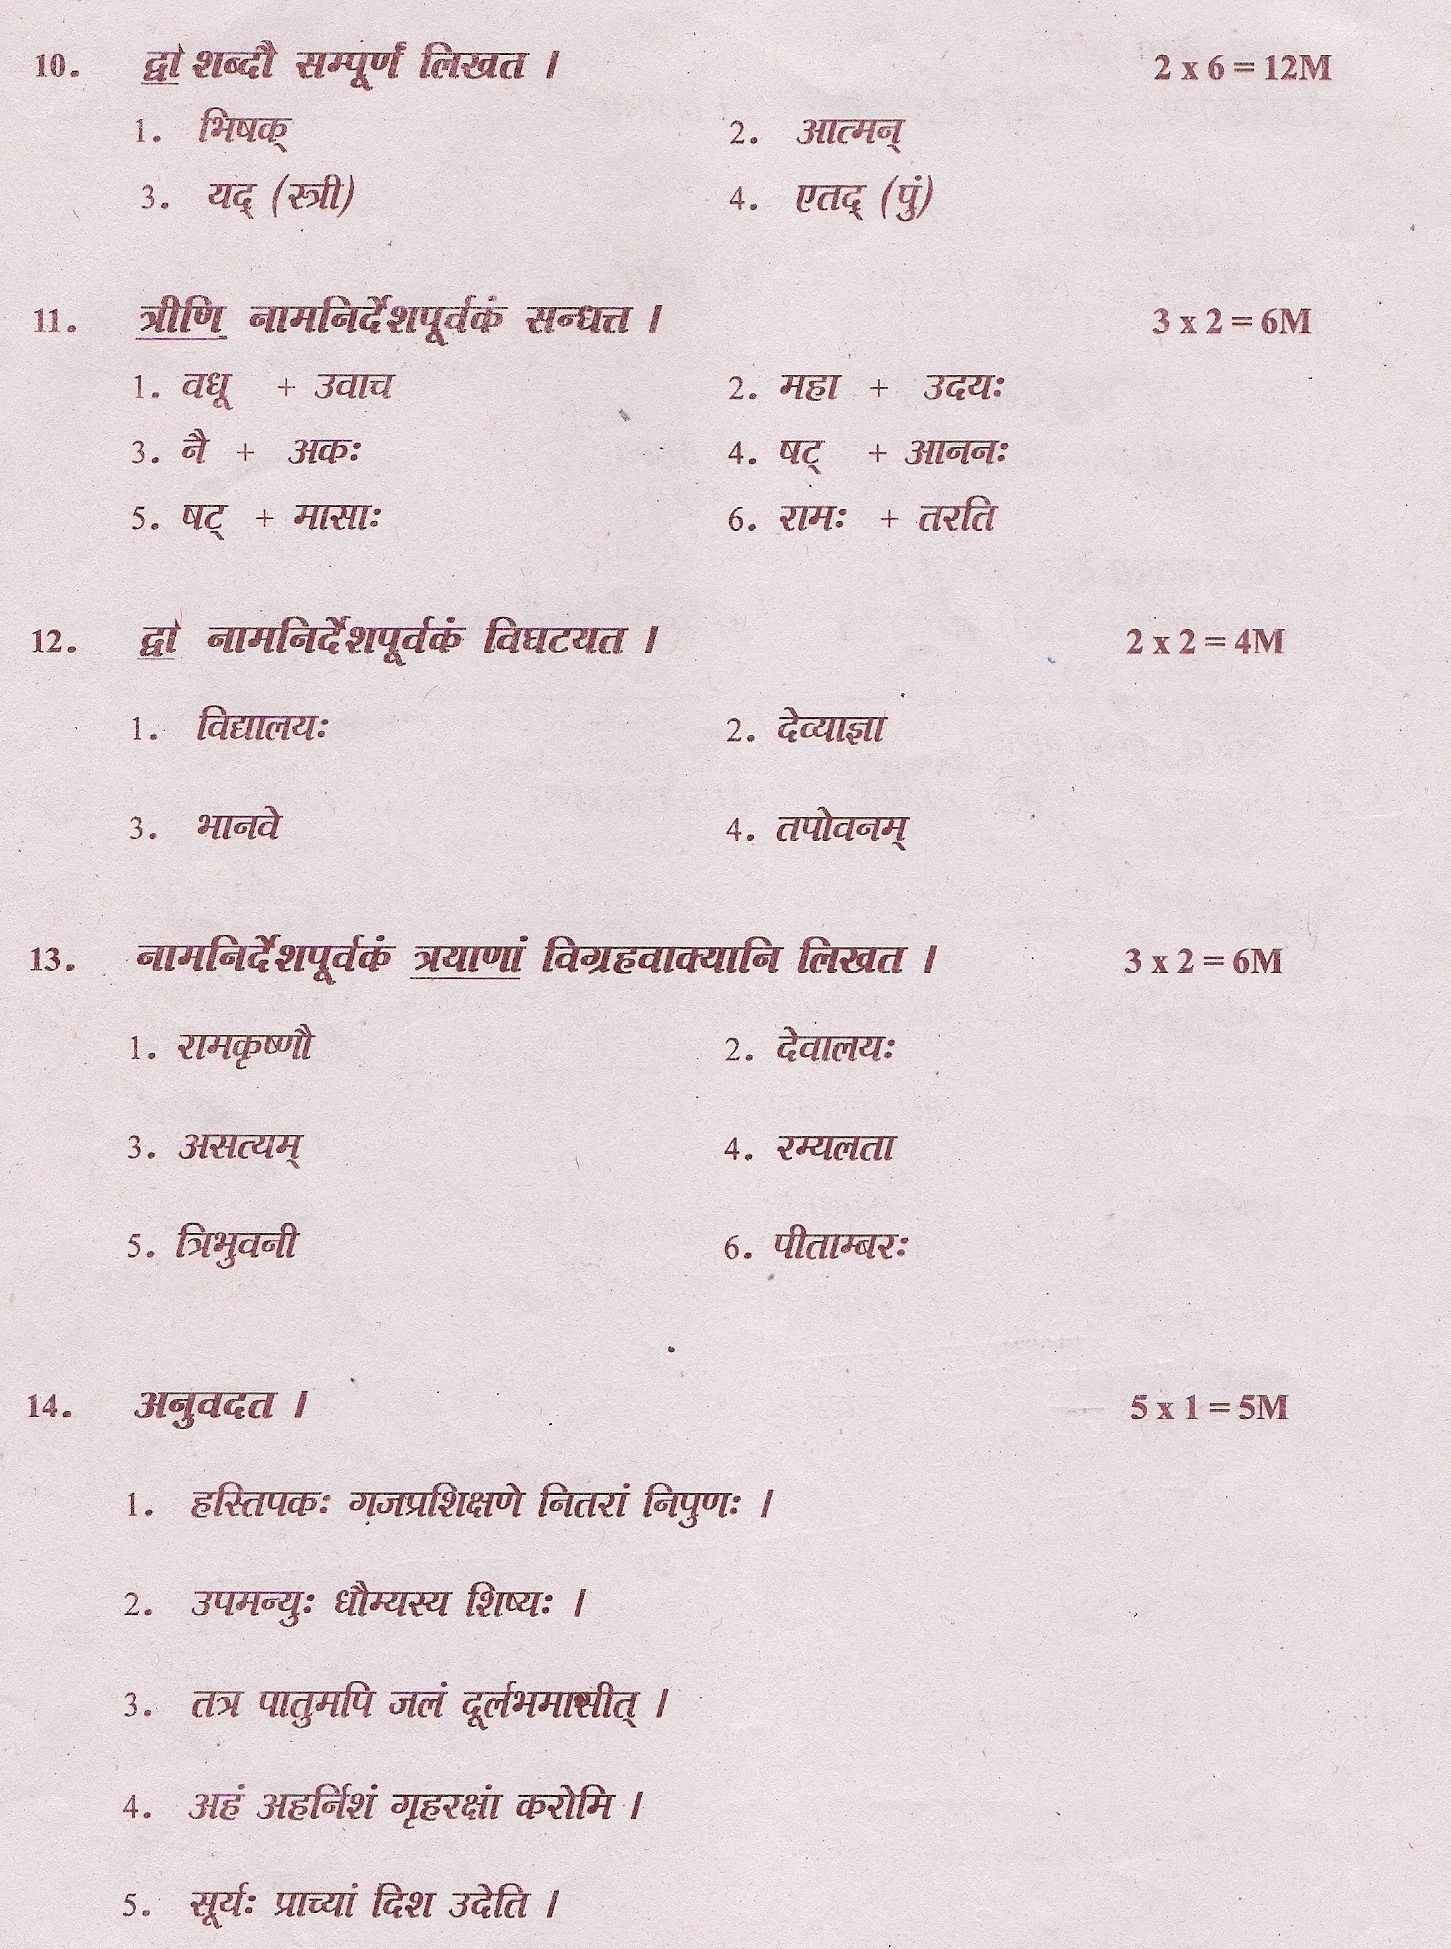 ap intermediate model papers 2010 Scert kerala 9th standard model papers 2019, orukkam kerala standard 9th model papers, scert kerala 9th standard previous papers 2019, orukkam kerala standard 9th.